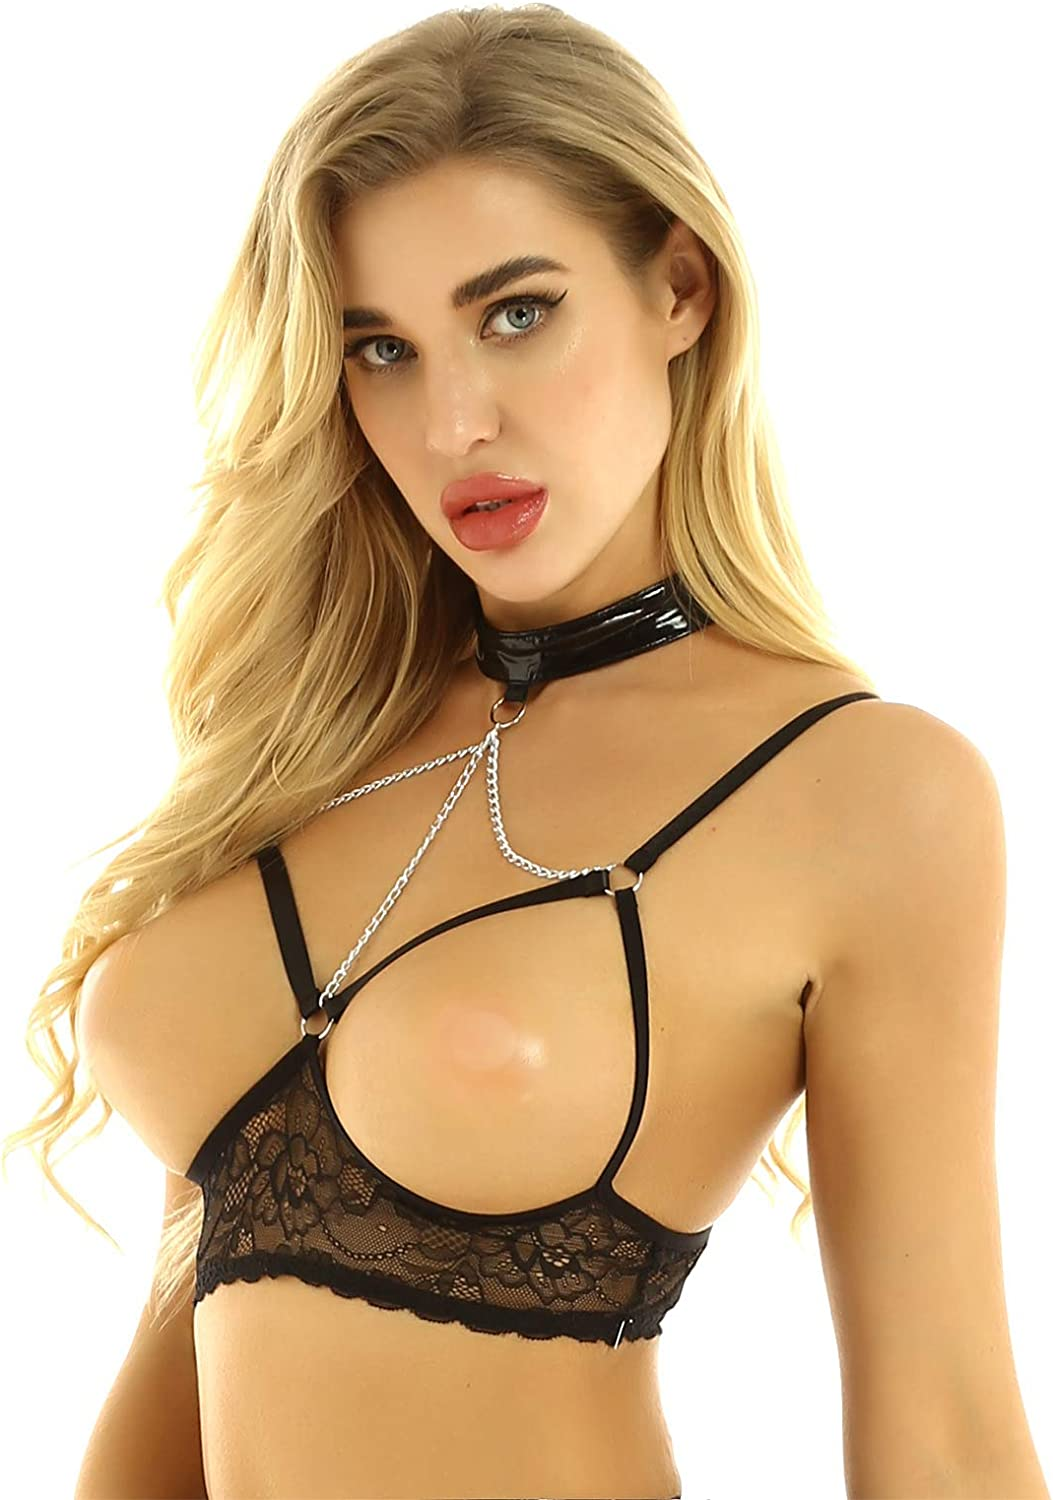 ACSUSS Womens Lingerie Halter Neck Sleeveless Bare Exposed Breasts Shelf Bra Tops with Metal Chains